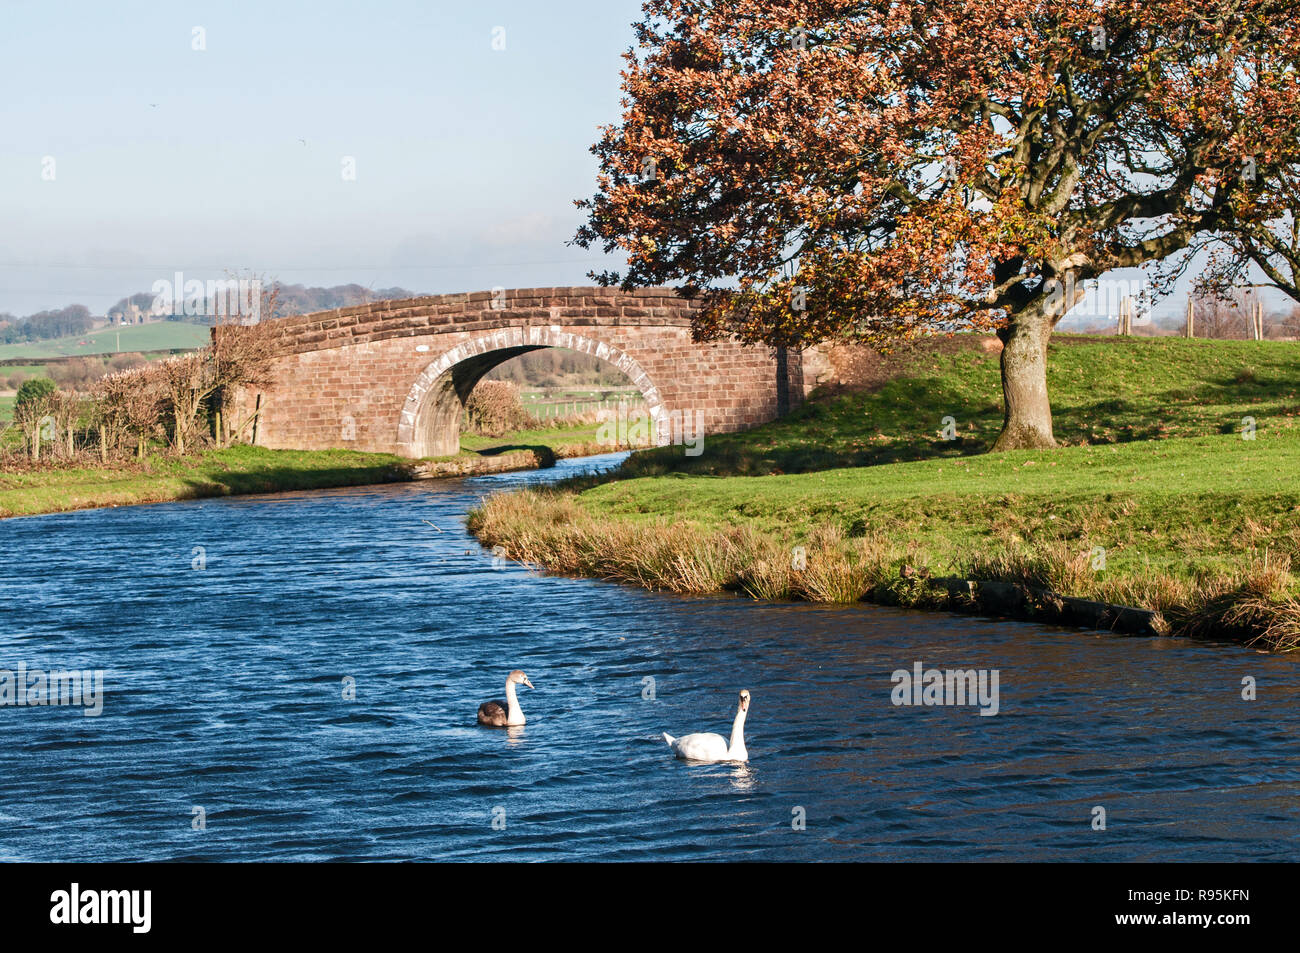 A view of the Leeds Liverpool canal, with Houghton Tower in the background - Stock Image